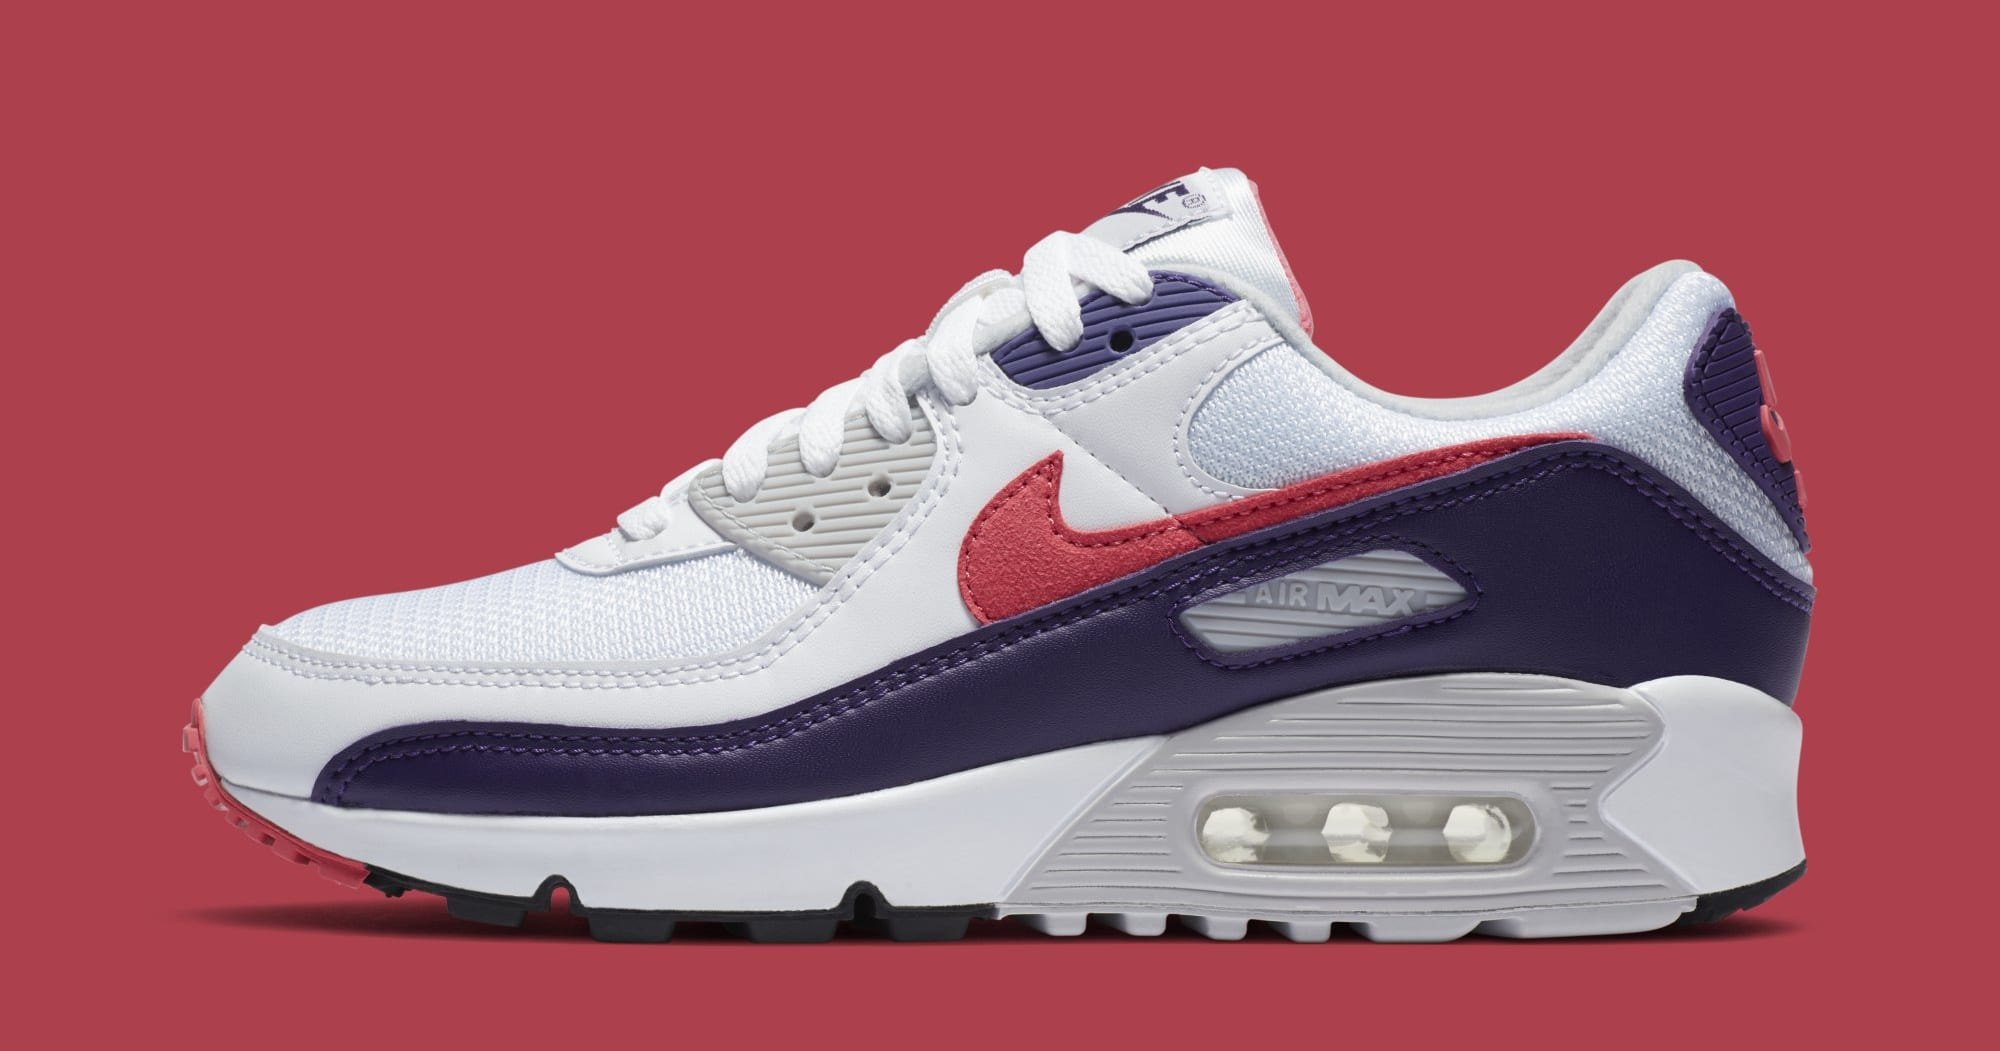 Nike Air Max 90 Women's 'Eggplant' CW1360-100 Lateral